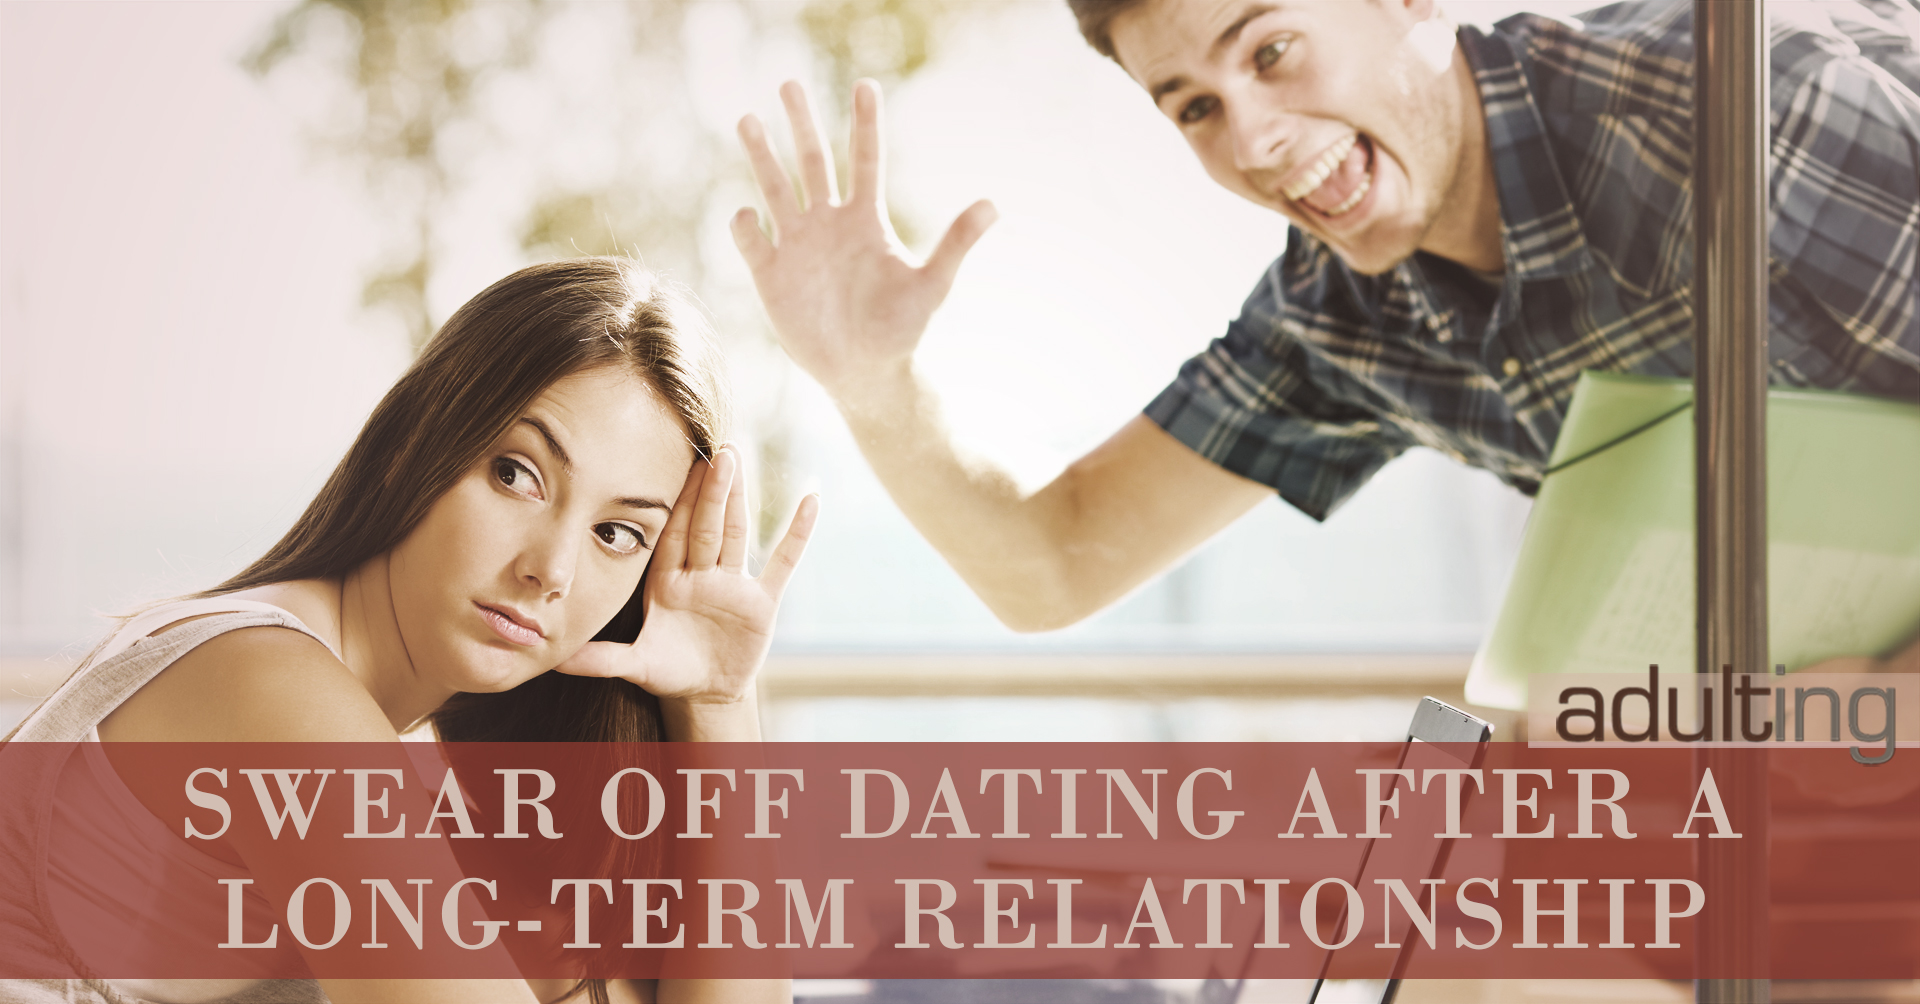 Sex And Dating After A Long-Term Relationship Breakup - Single Life Hack